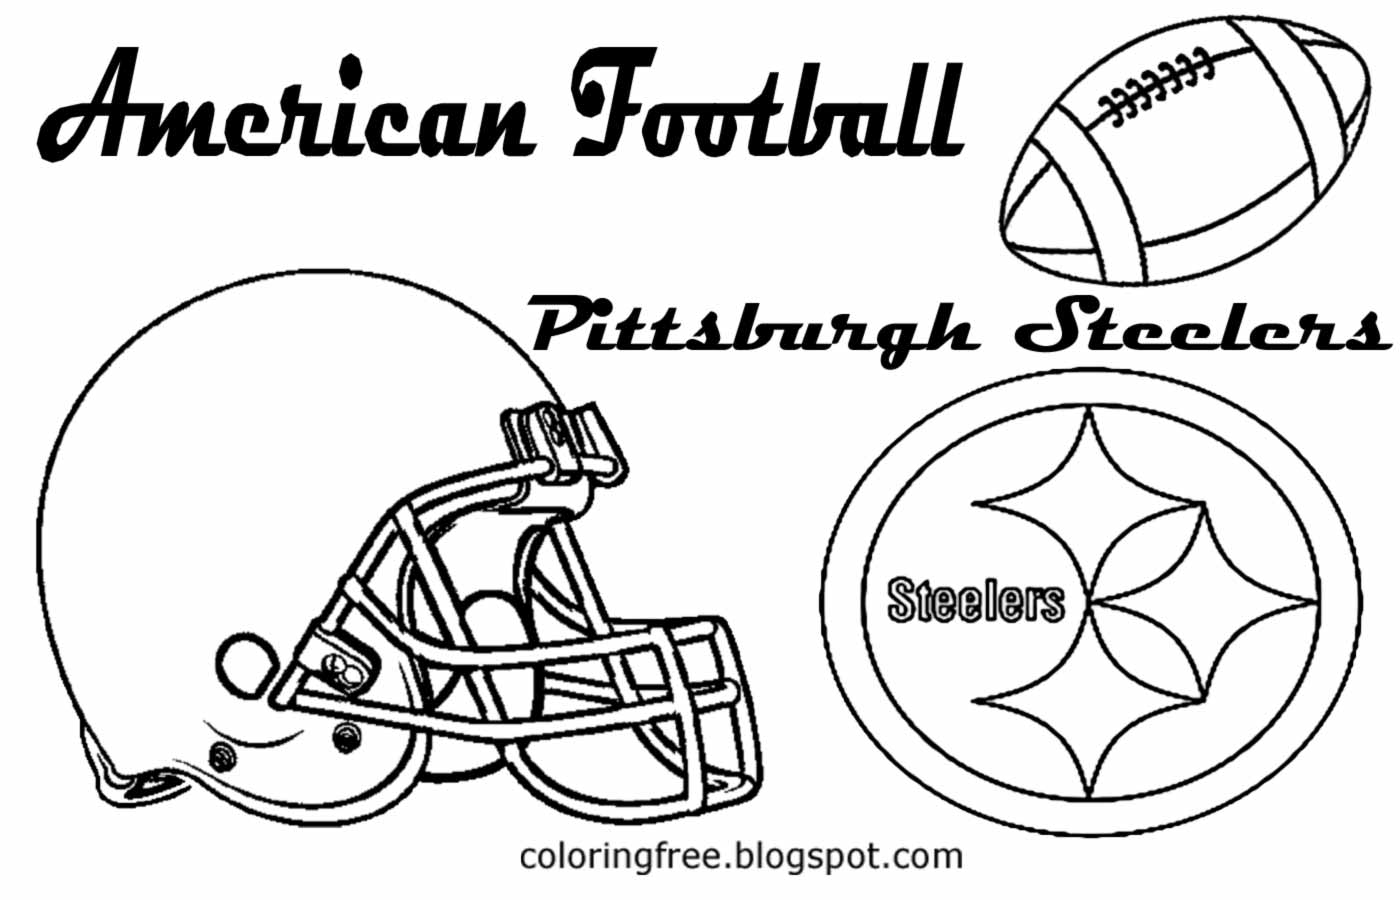 Uncategorized Pittsburgh Steelers Coloring Pages free coloring pages printable pictures to color kids drawing ideas pittsburgh steelers american football art for youngsters usa sport games